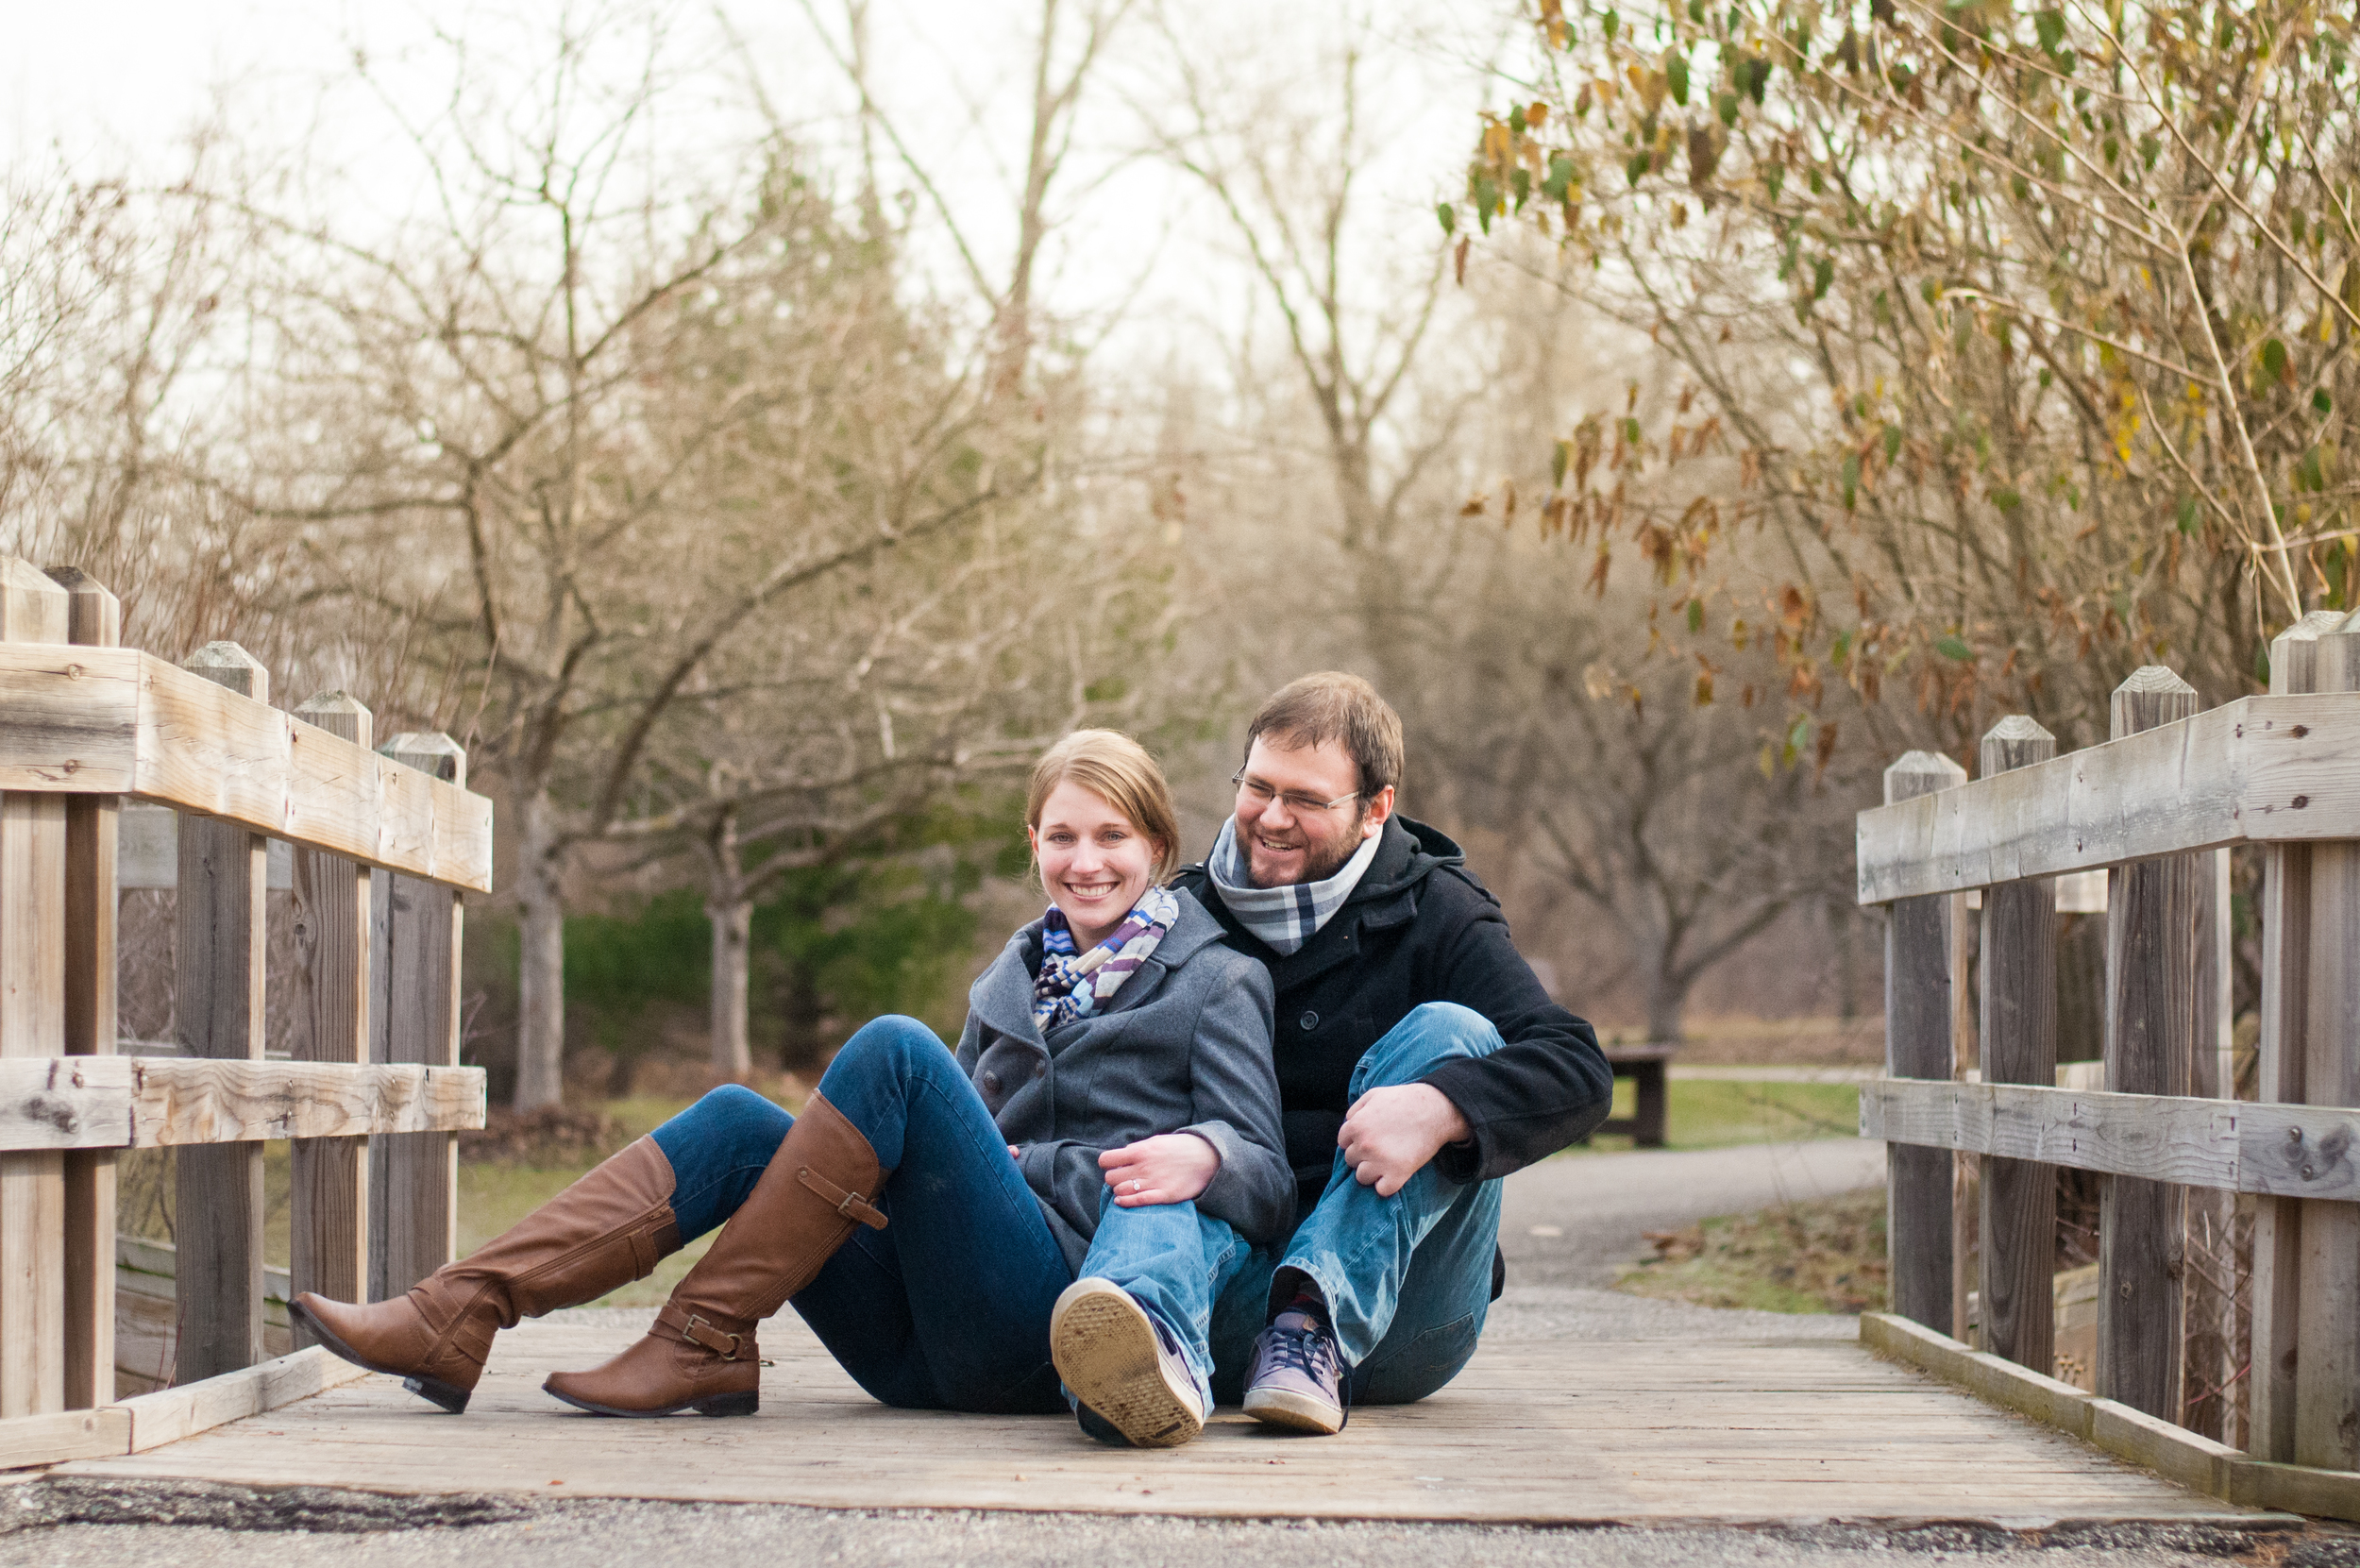 meredithdonnellyphotography-Engagement Geal-7.jpg